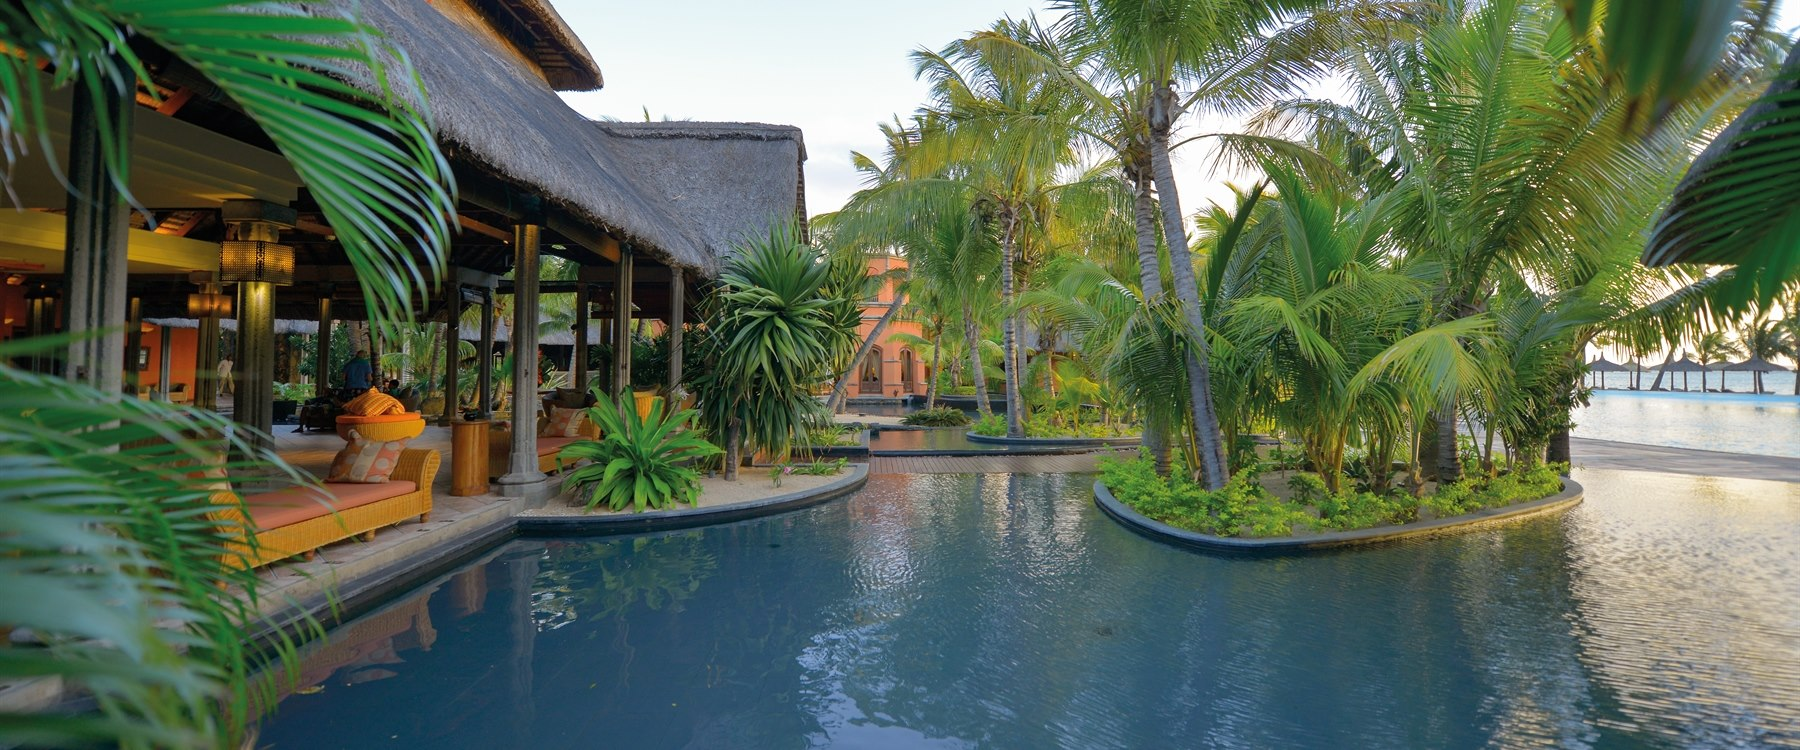 The swimming pool at Dinarobin Beachcomber Golf Resort & Spa, Mauritius